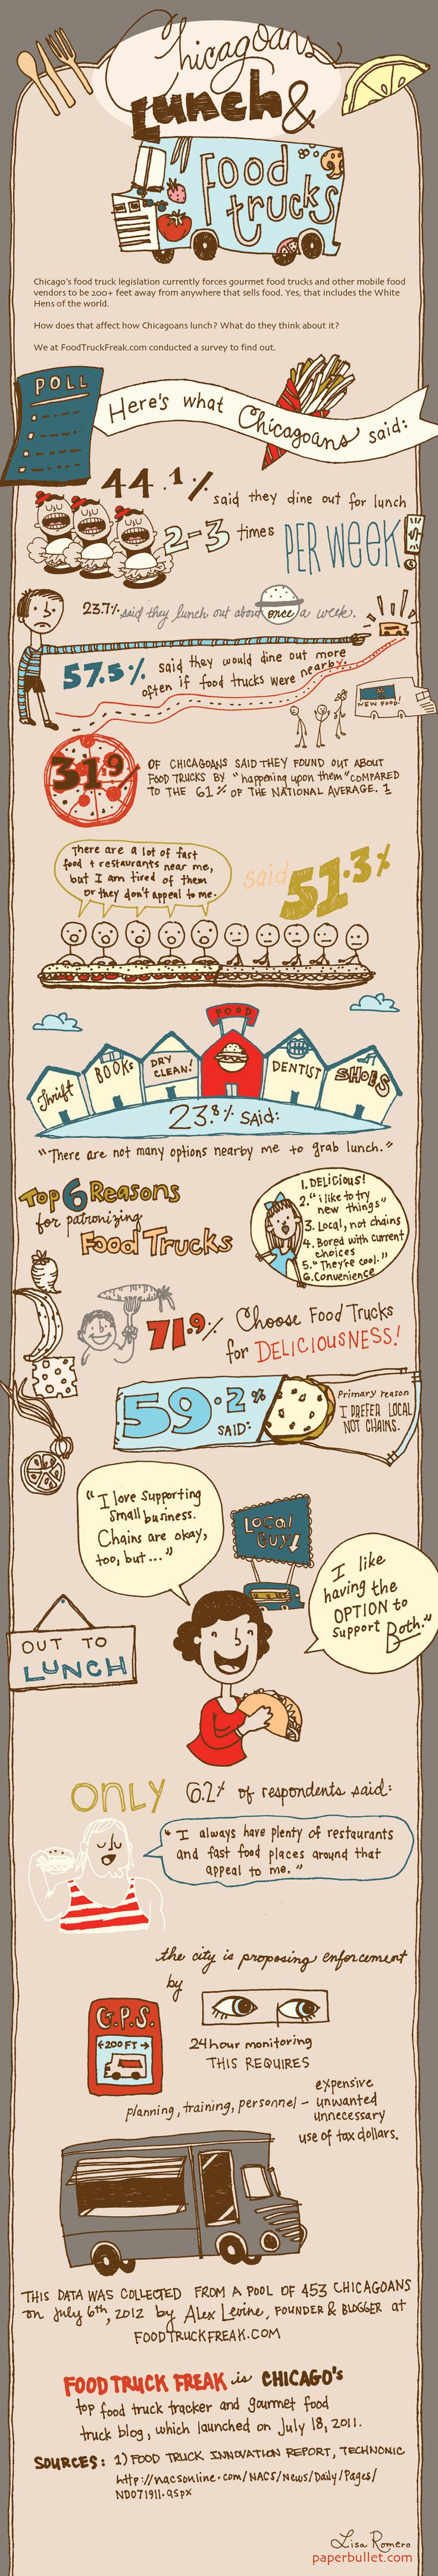 Infographic about Chicago and Food Trucks for Lunch for alex levine and foodtruckfreak.com